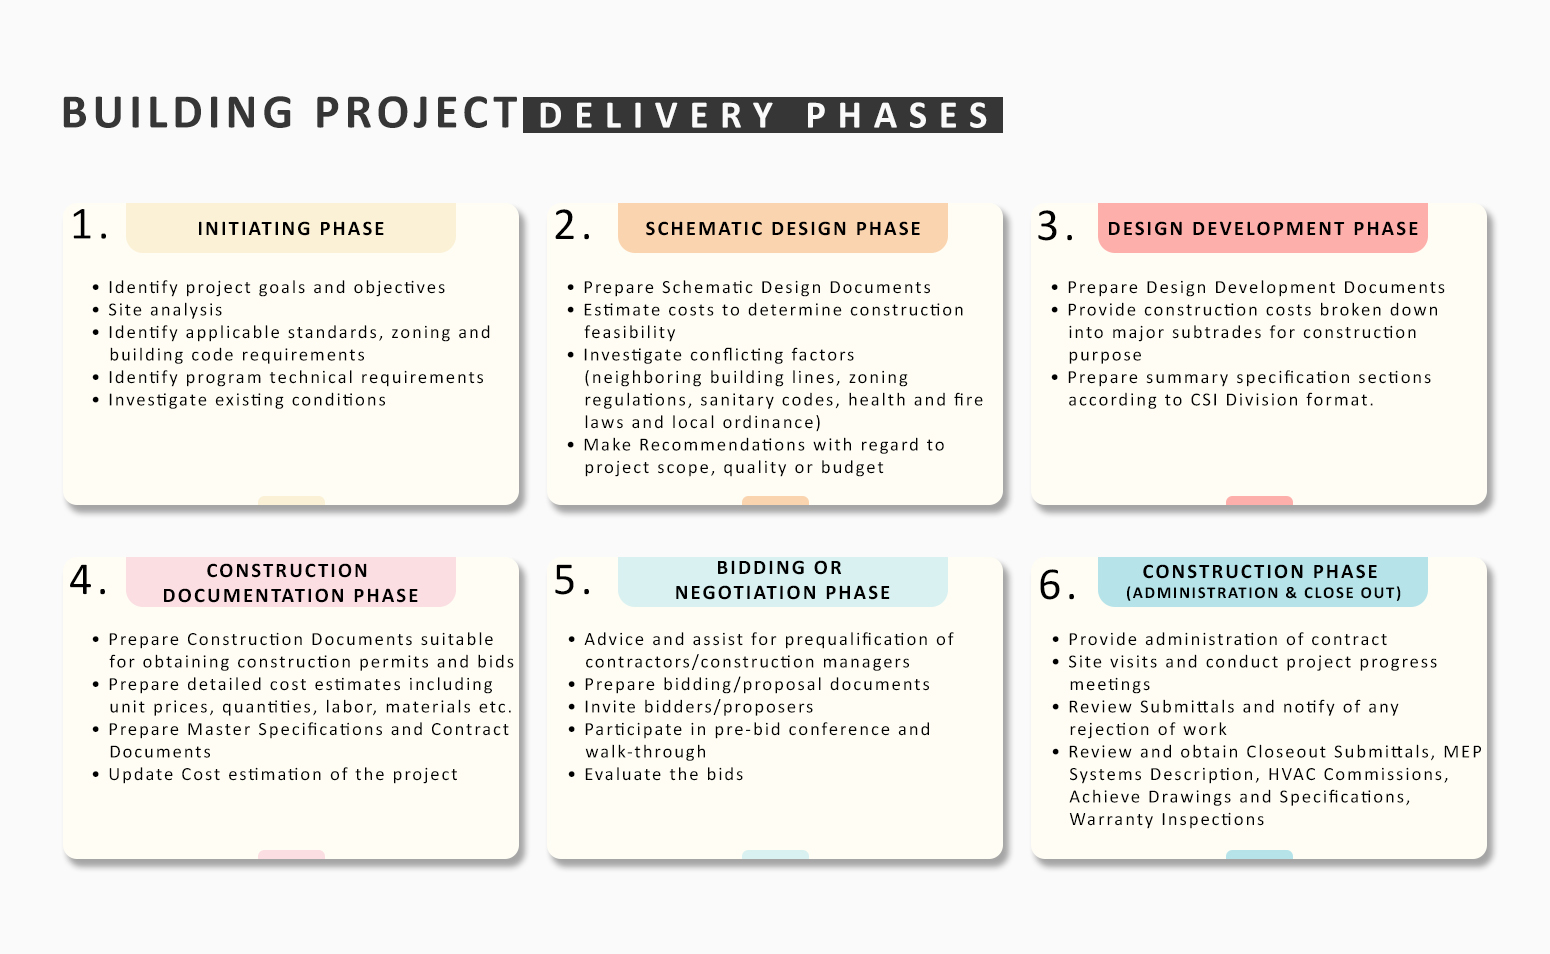 Building Project Delivery Phases_by Russell and Dawson